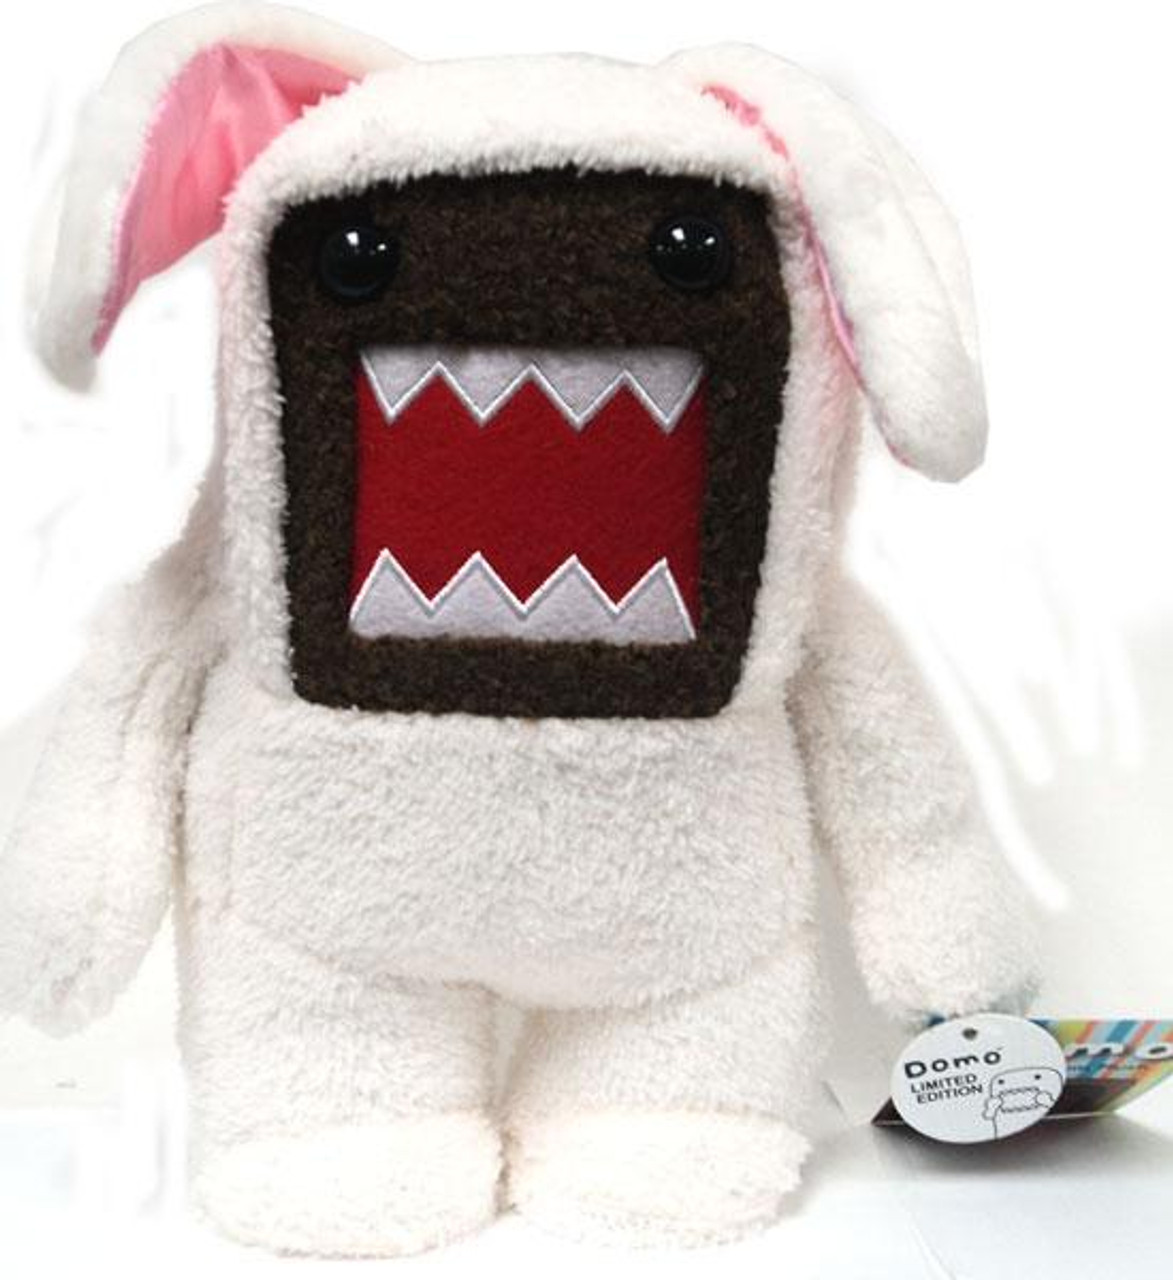 Easter Bunny Domo 9-Inch Plush Figure [White Outfit]